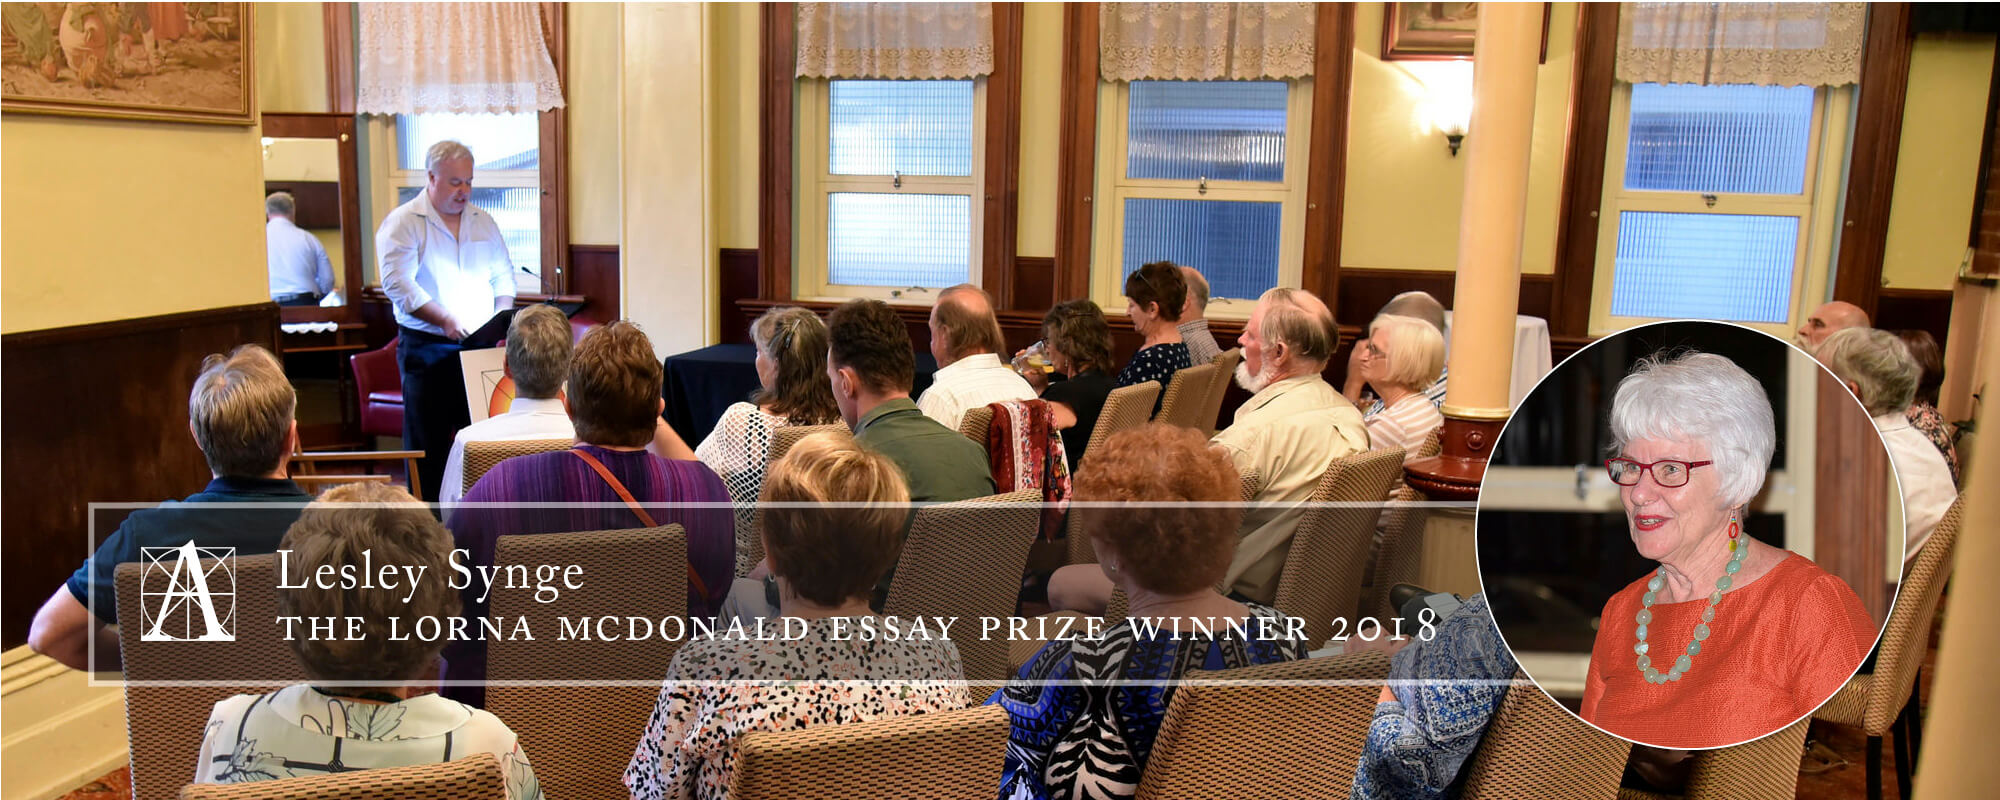 Click here to read the Lorna McDonald Essay Prize Winner 2018